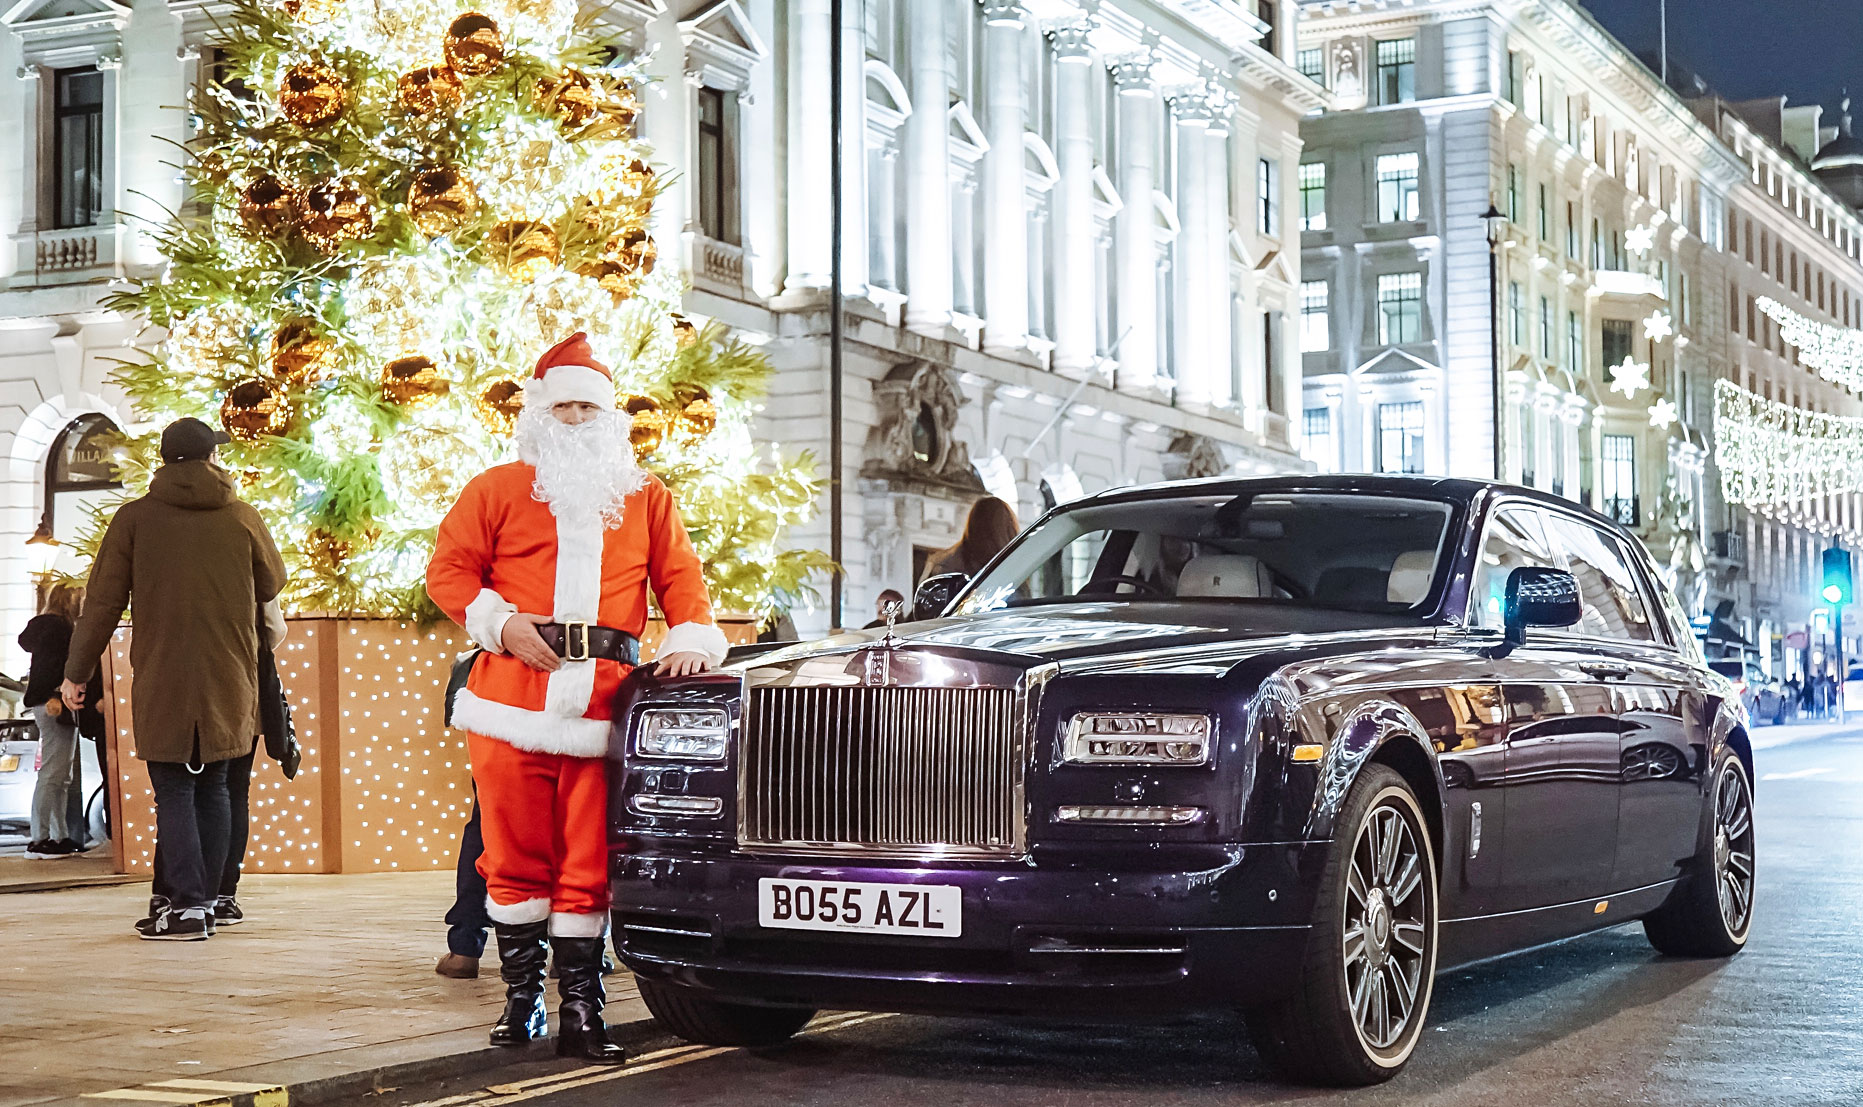 The Luxury A to Z of London in a Rolls Royce Phantom 11